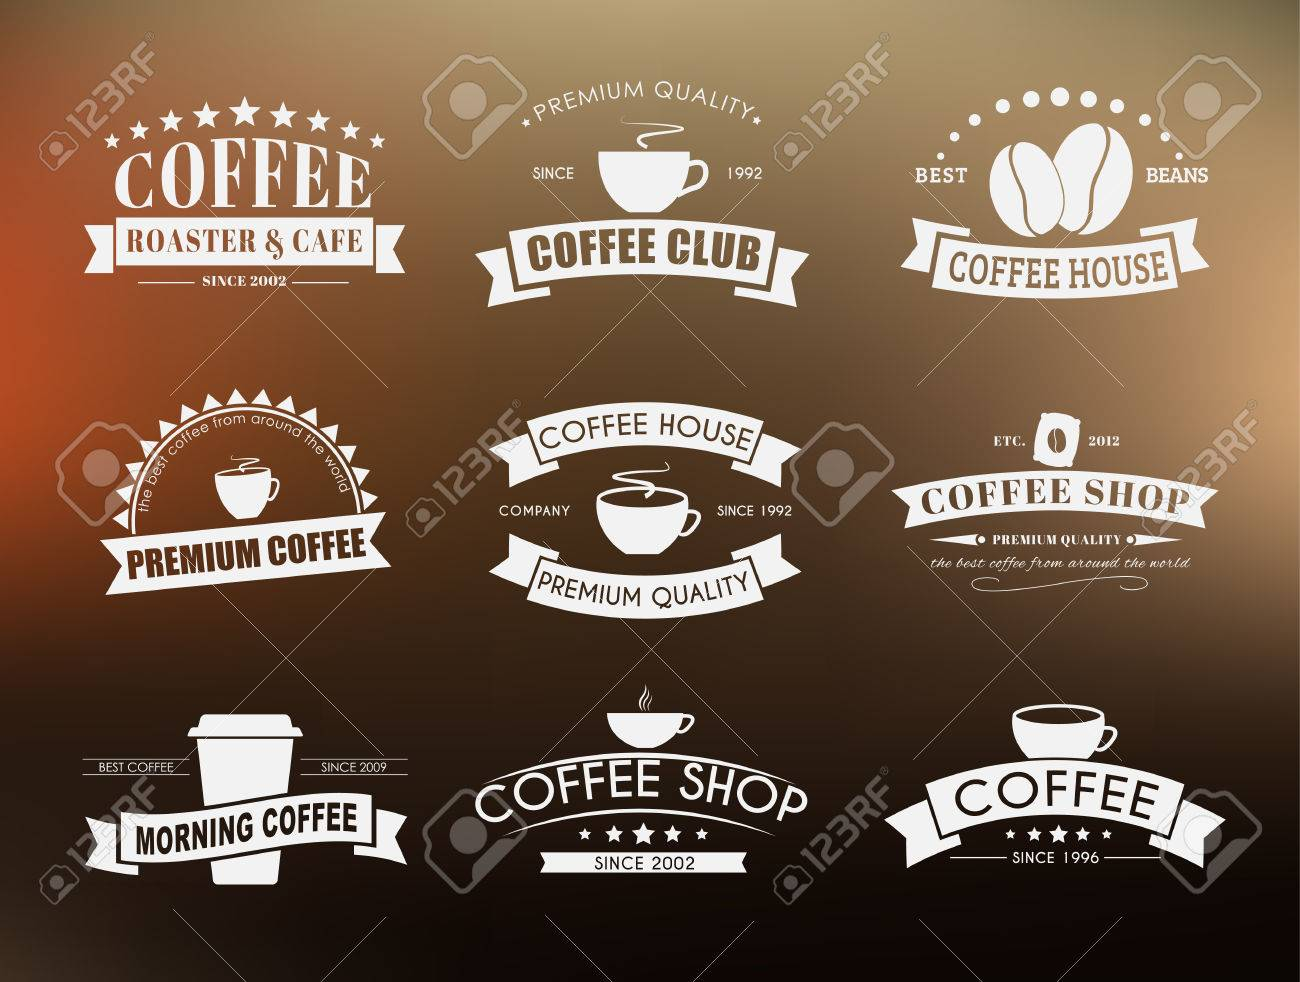 Art logo logo s coffee logo coffee shop coffee design shop logo coffee - Design Coffee Logos Emblems In The Old Style With Ribbons Vector Illustration